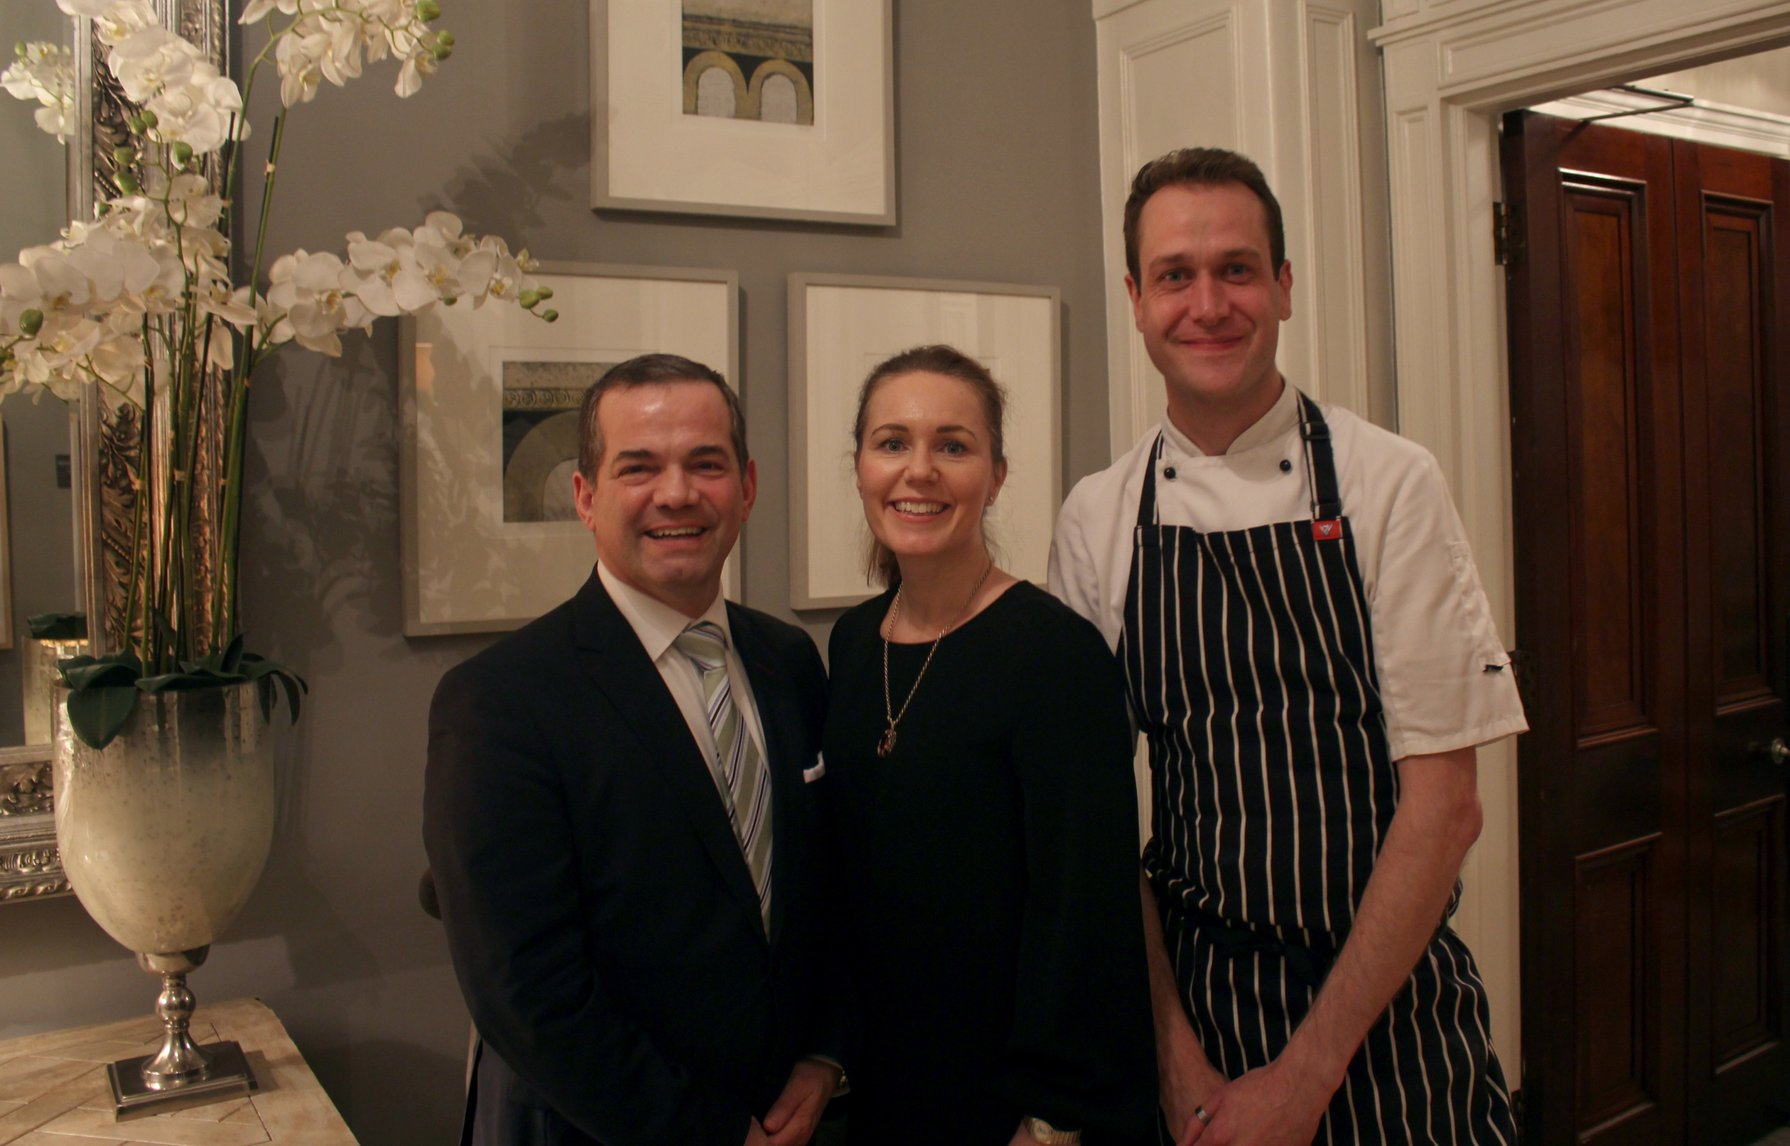 No. 25 Fitzwilliam Place | Events Team | John Healy | Denise Bevan | Richard Stearn